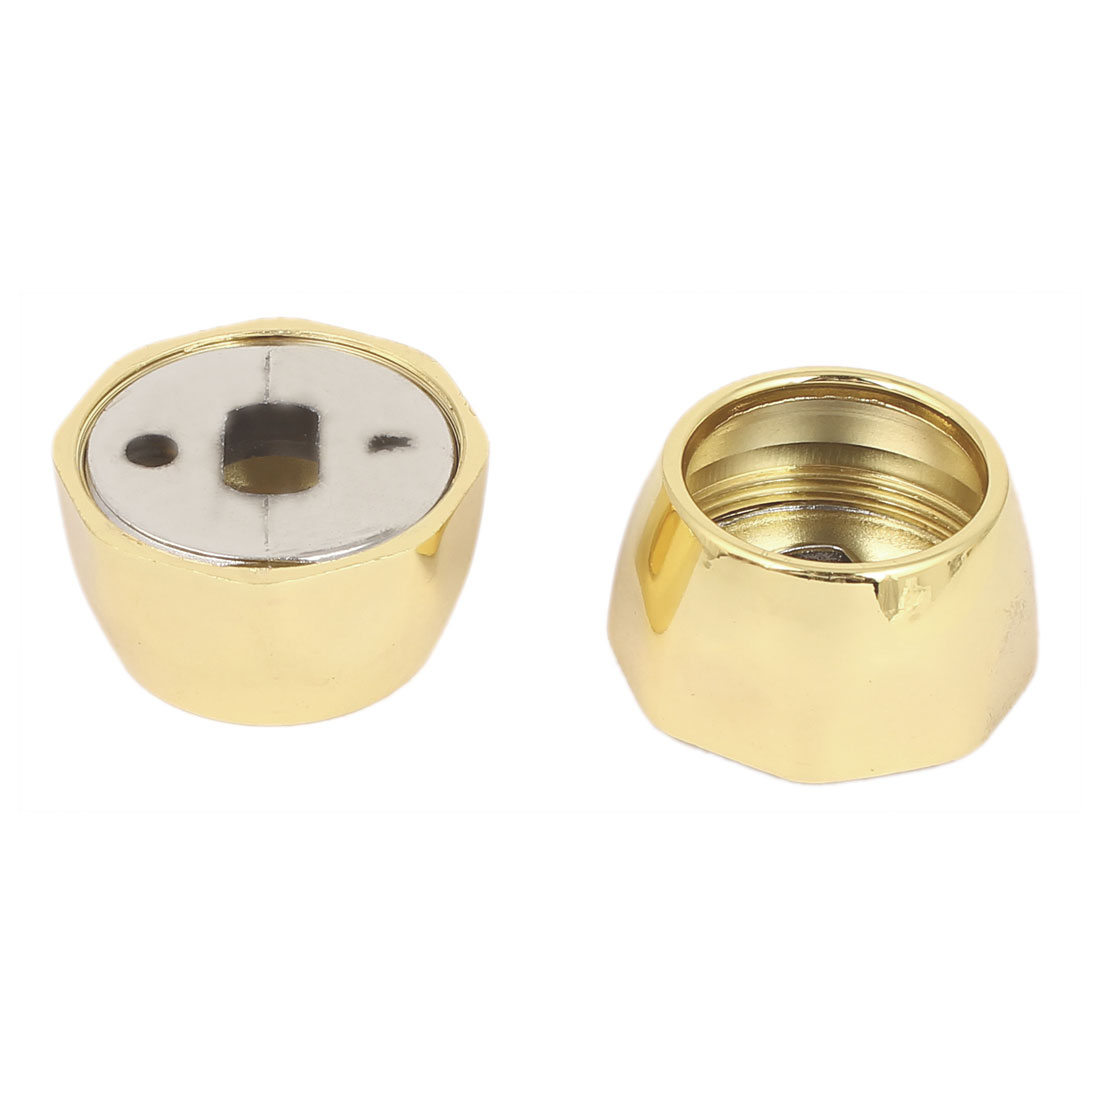 Wardrobe Metal Round Tube Flange Base Rail End Support Bracket Gold Tone 2pcs